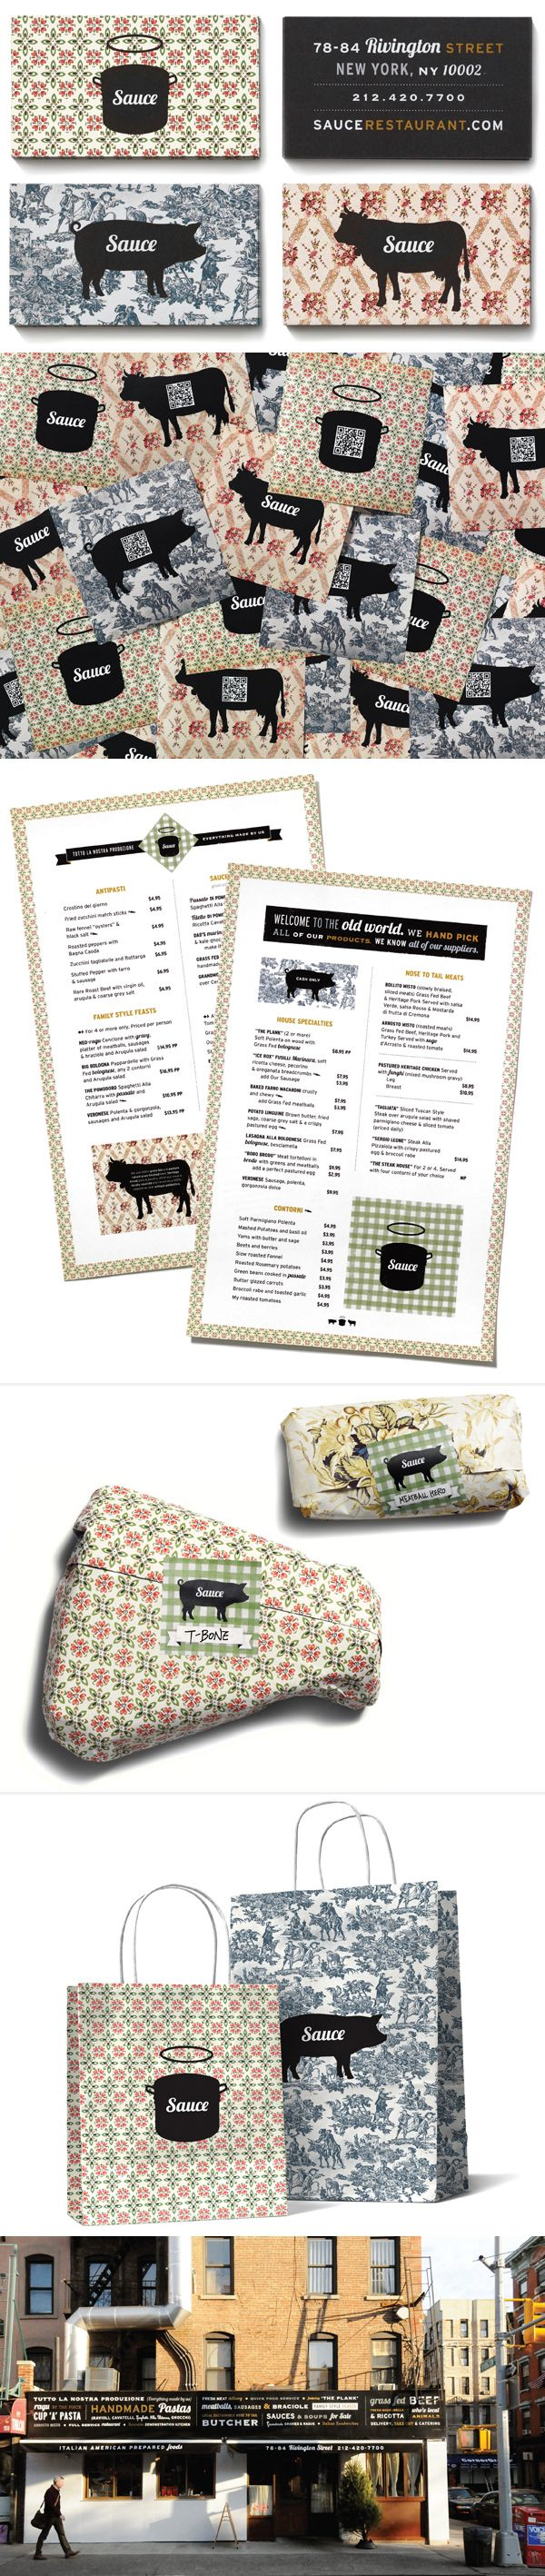 Yummy visual ID sauce restaurant identity packaging branding marketing curated by Packaging Diva PD